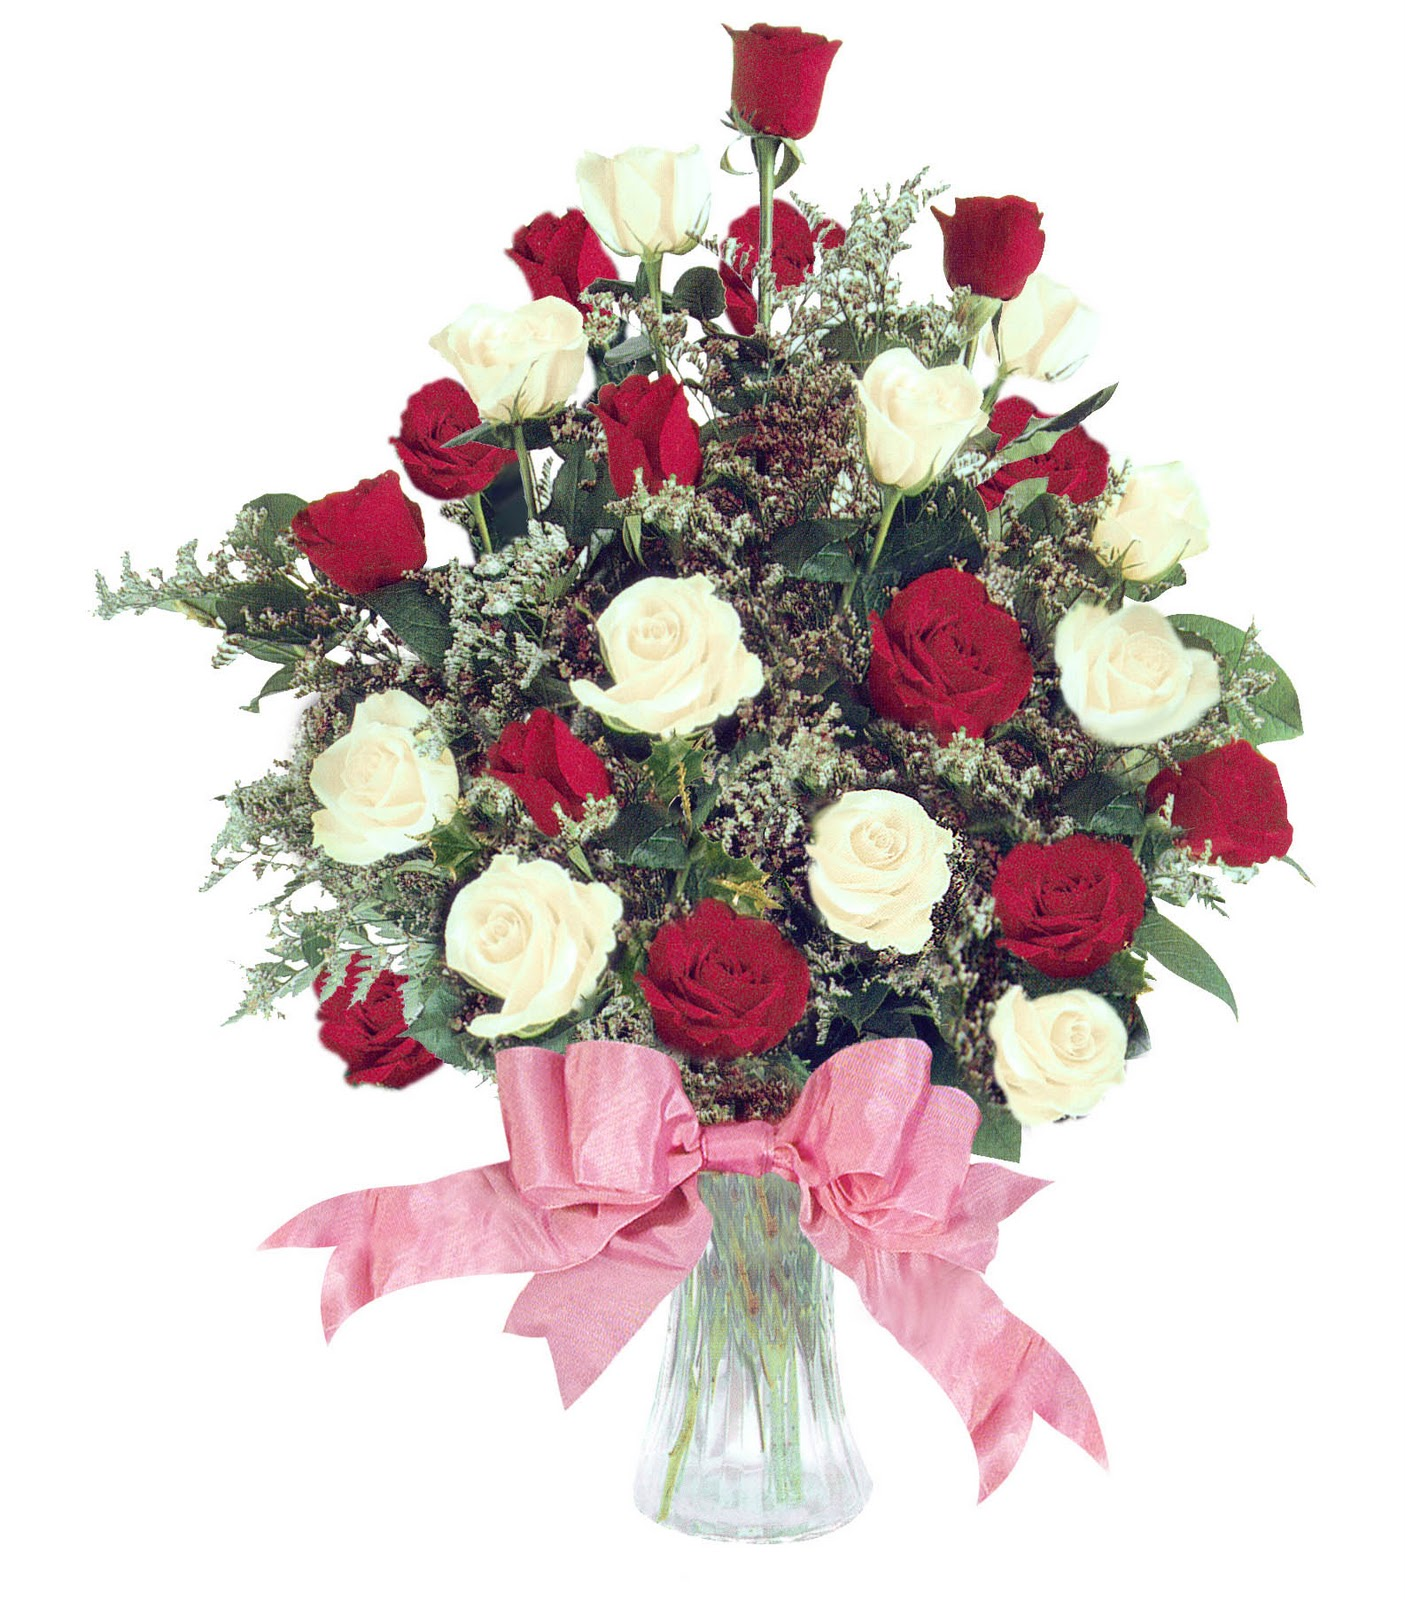 delivery pictures hd valentines day flower delivery pic hd valentines day flower delivery picture hd valentines day flower delivery photo - Valentine Day Flower Delivery